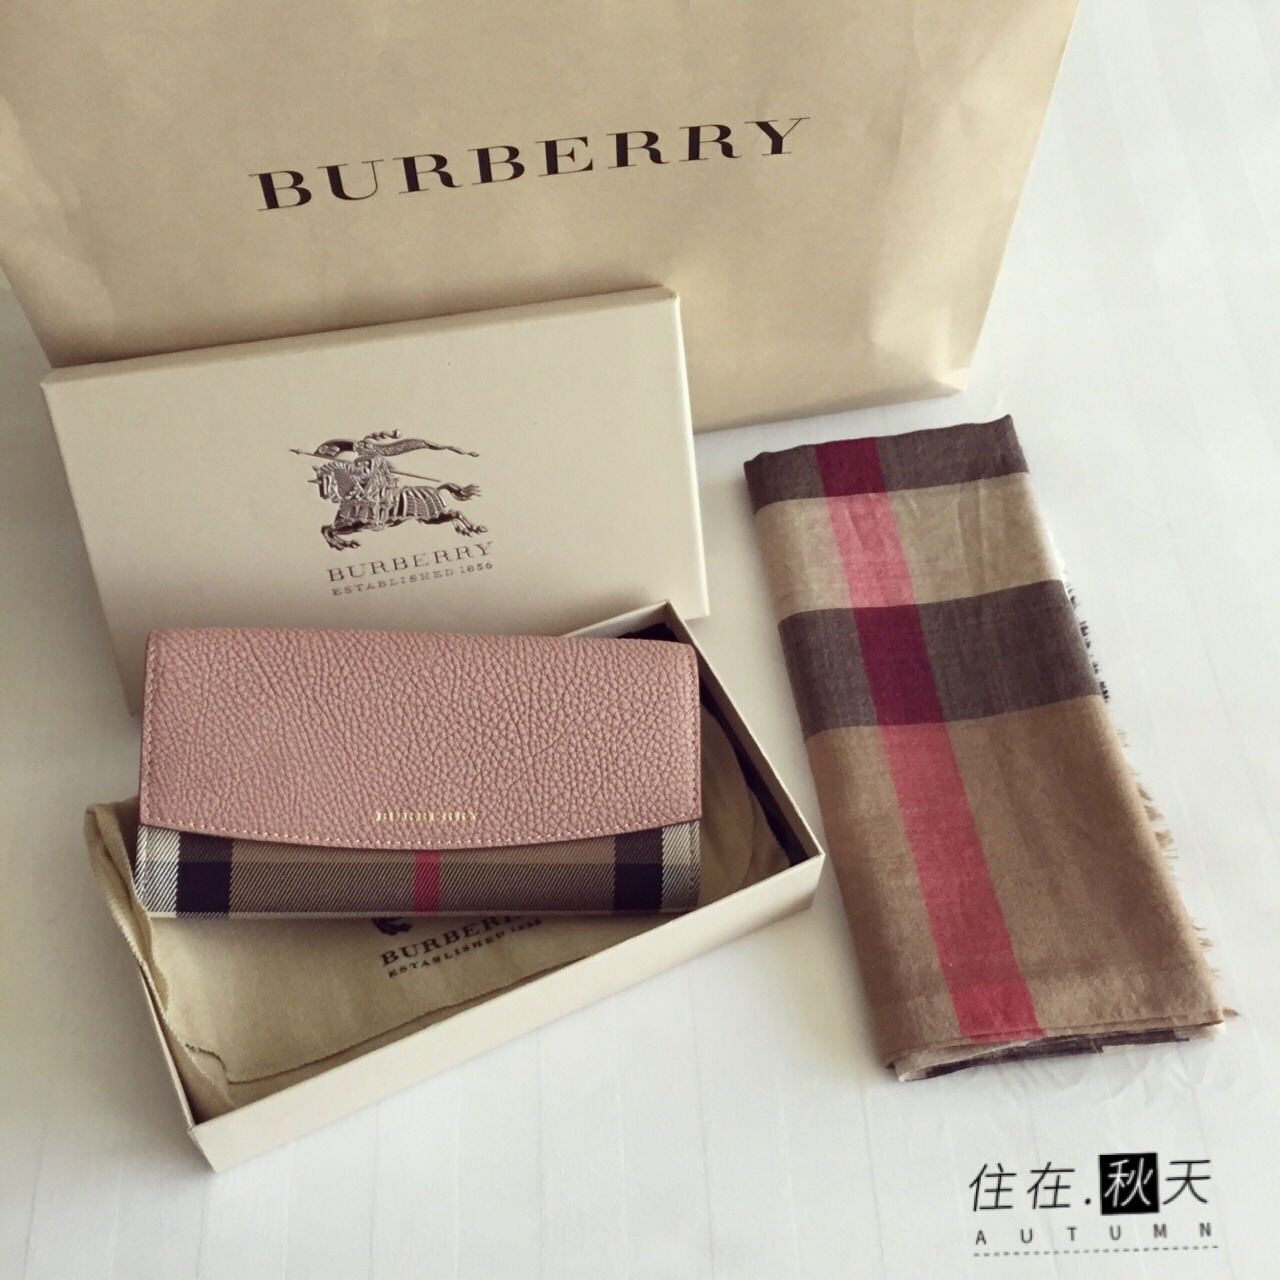 burberrry outlet  burberryoutlet